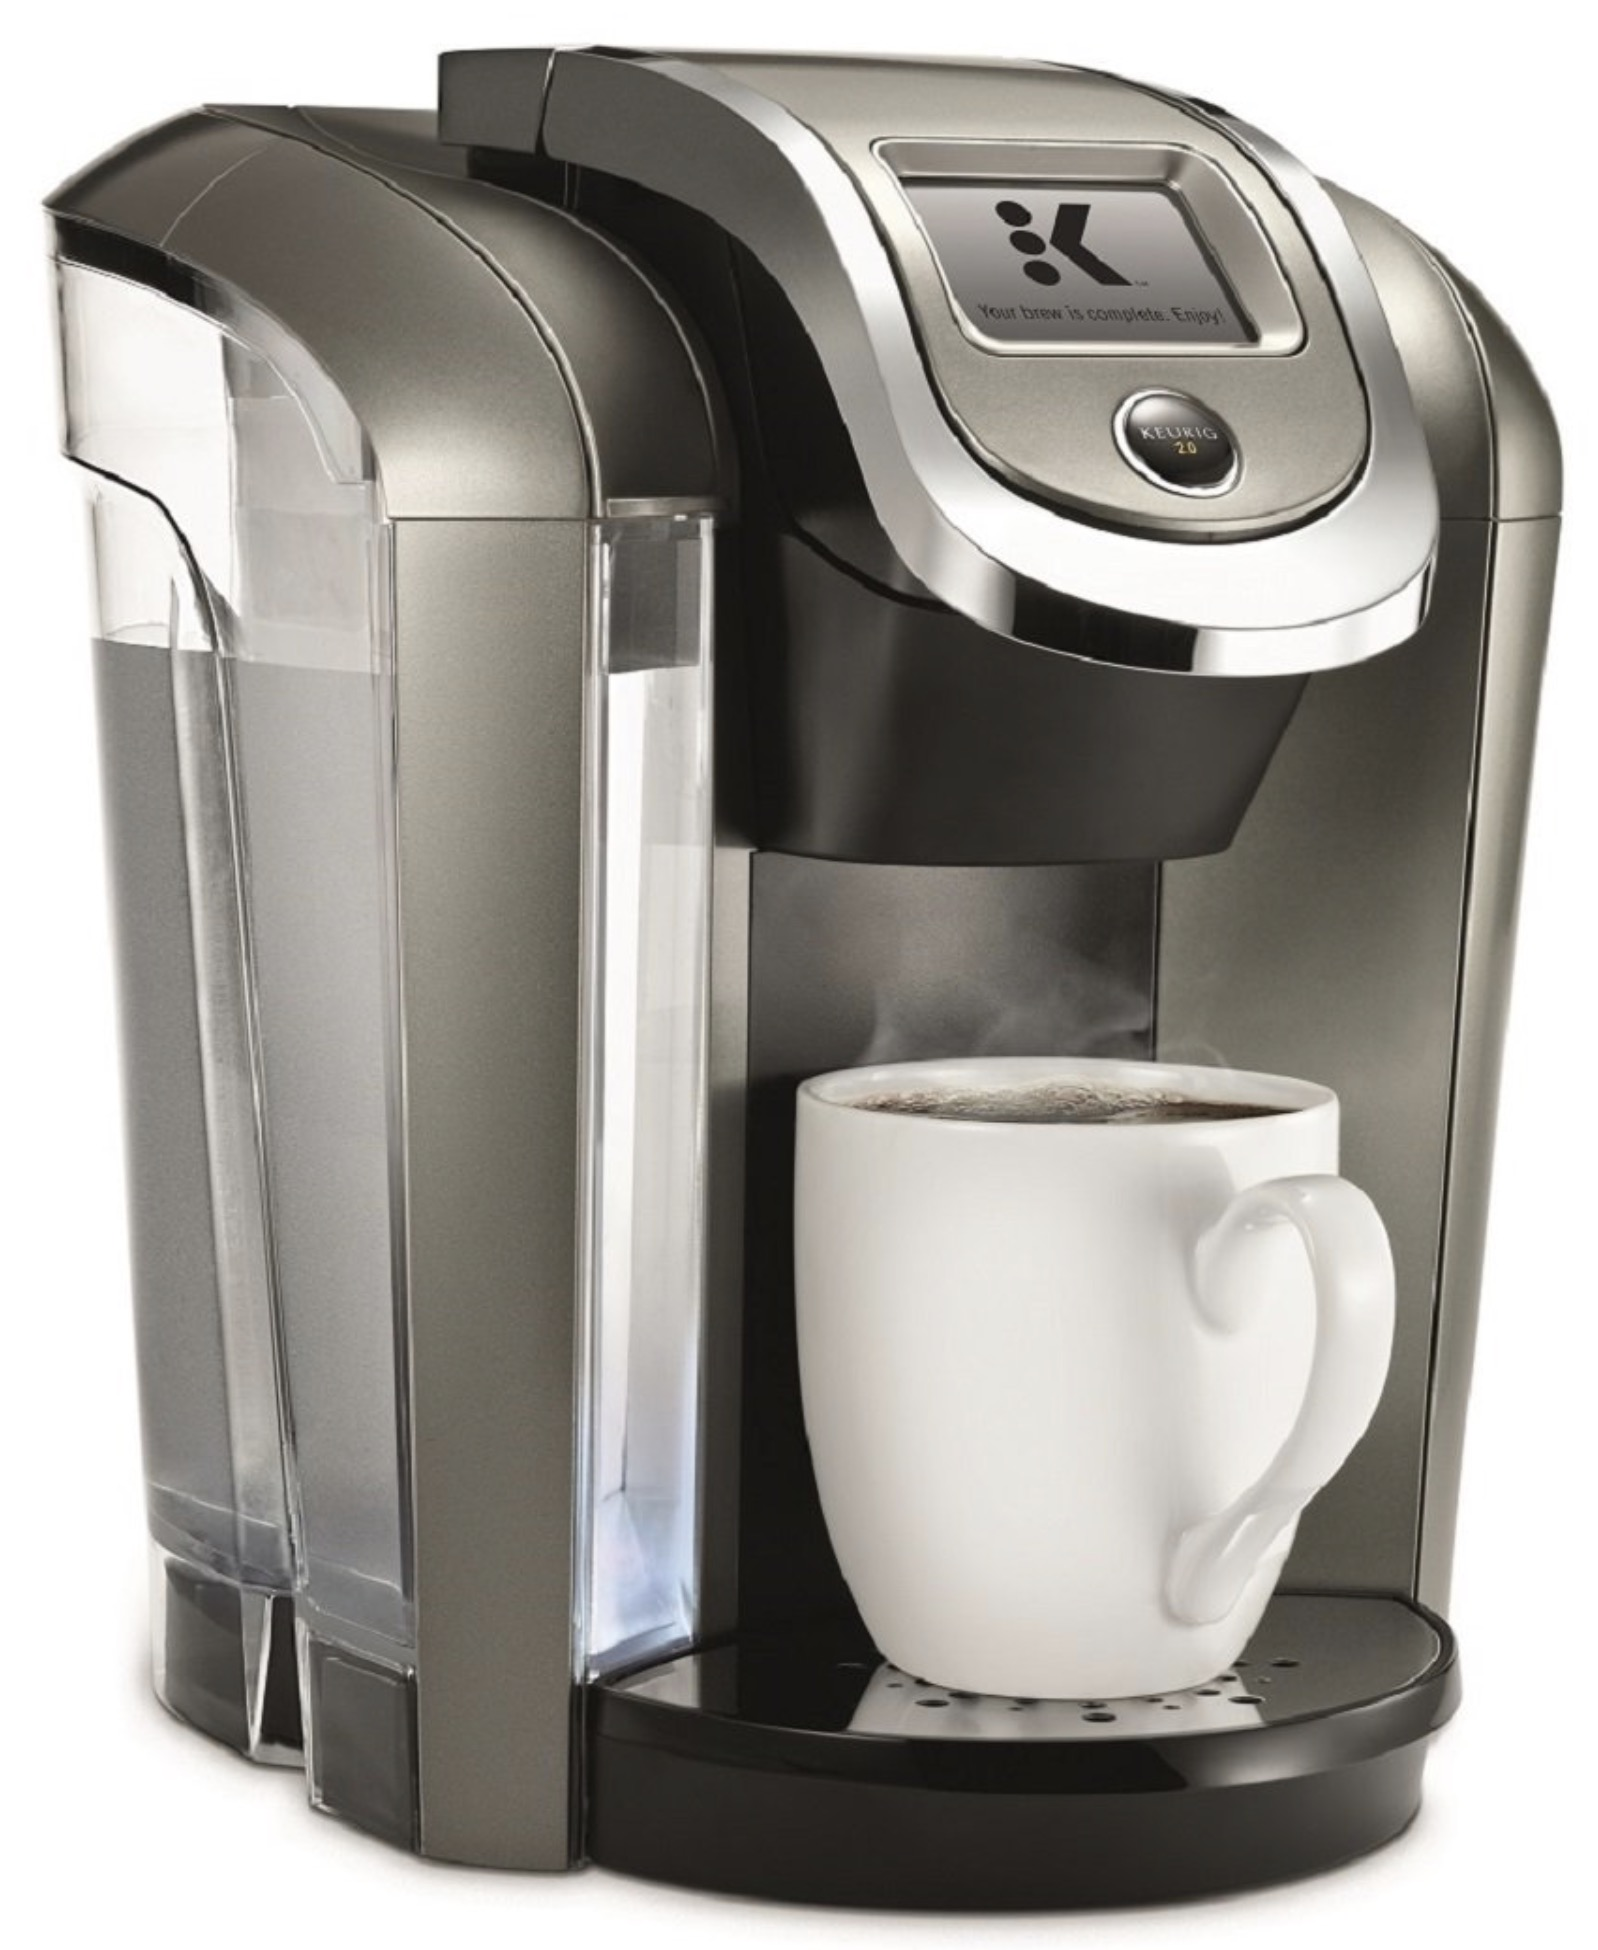 Keurig K575 Single Serve Coffee Maker Review